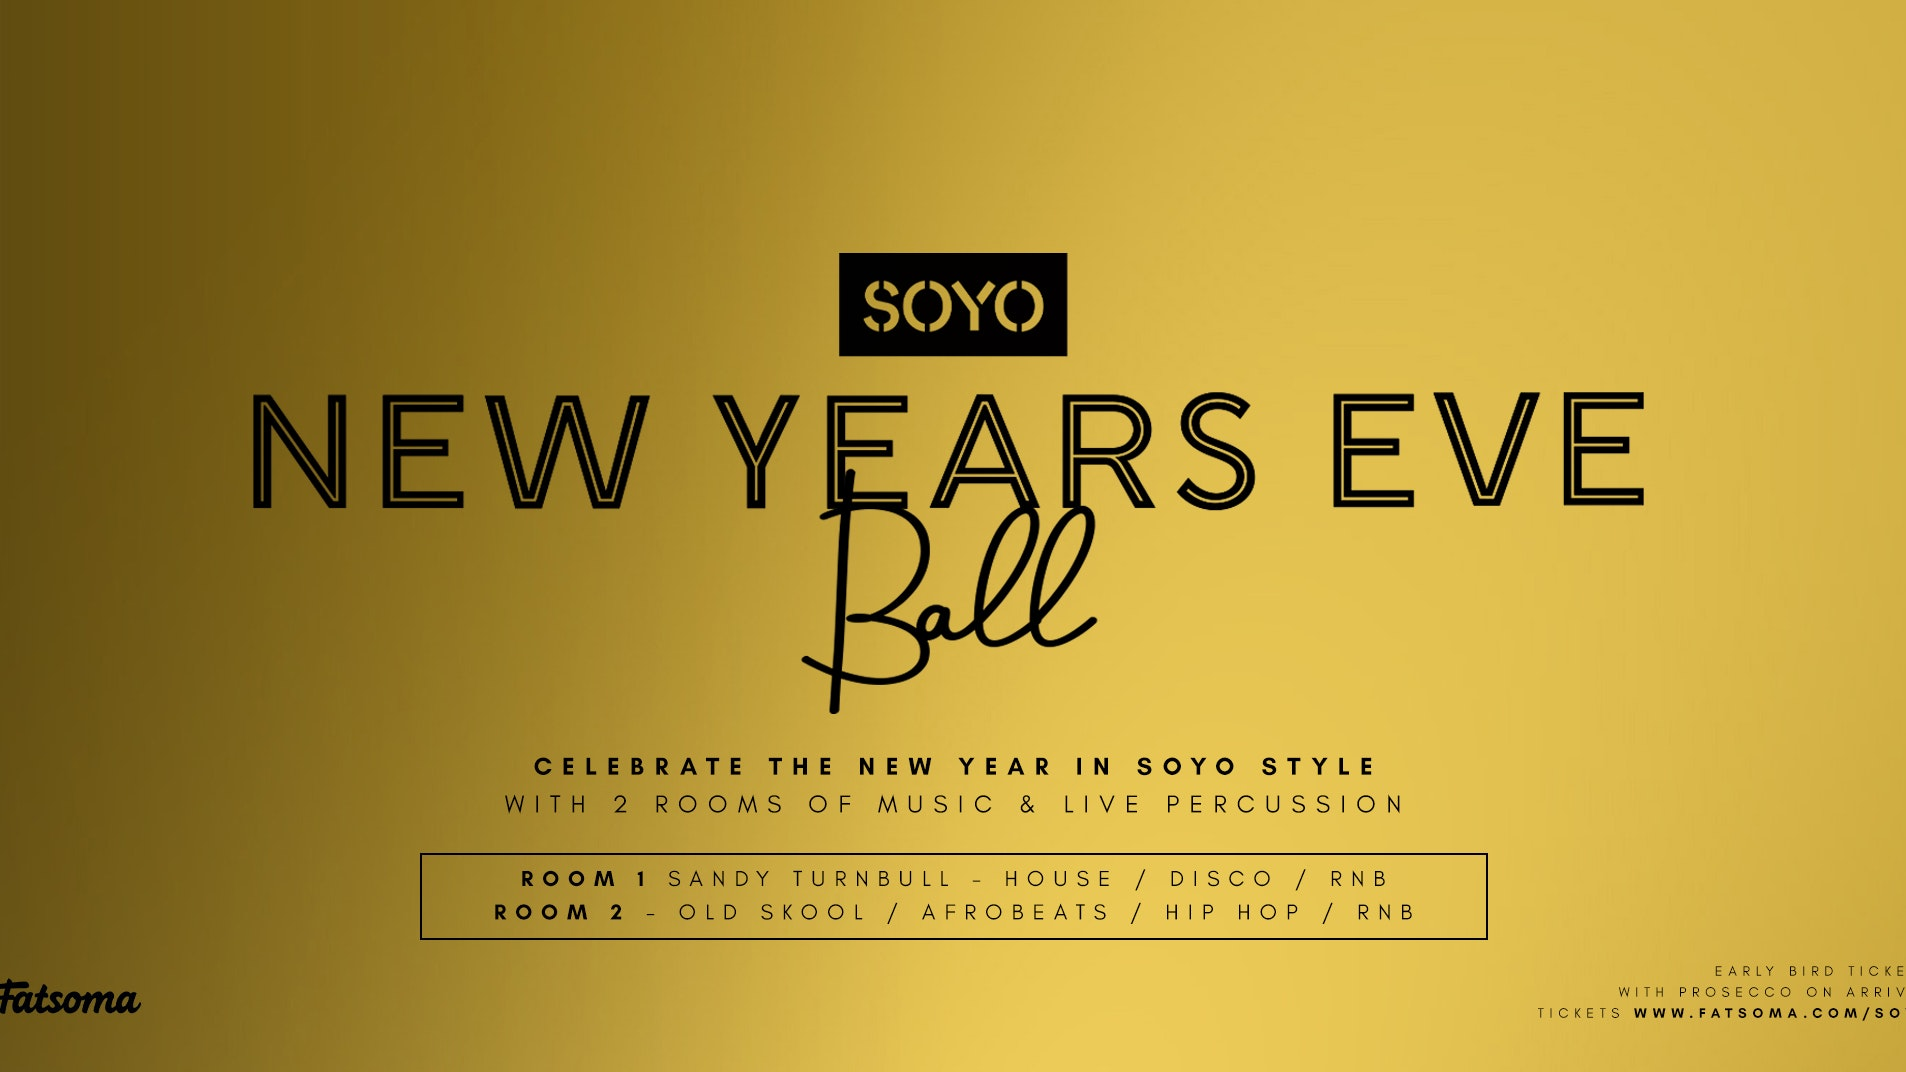 New Years Eve Ball